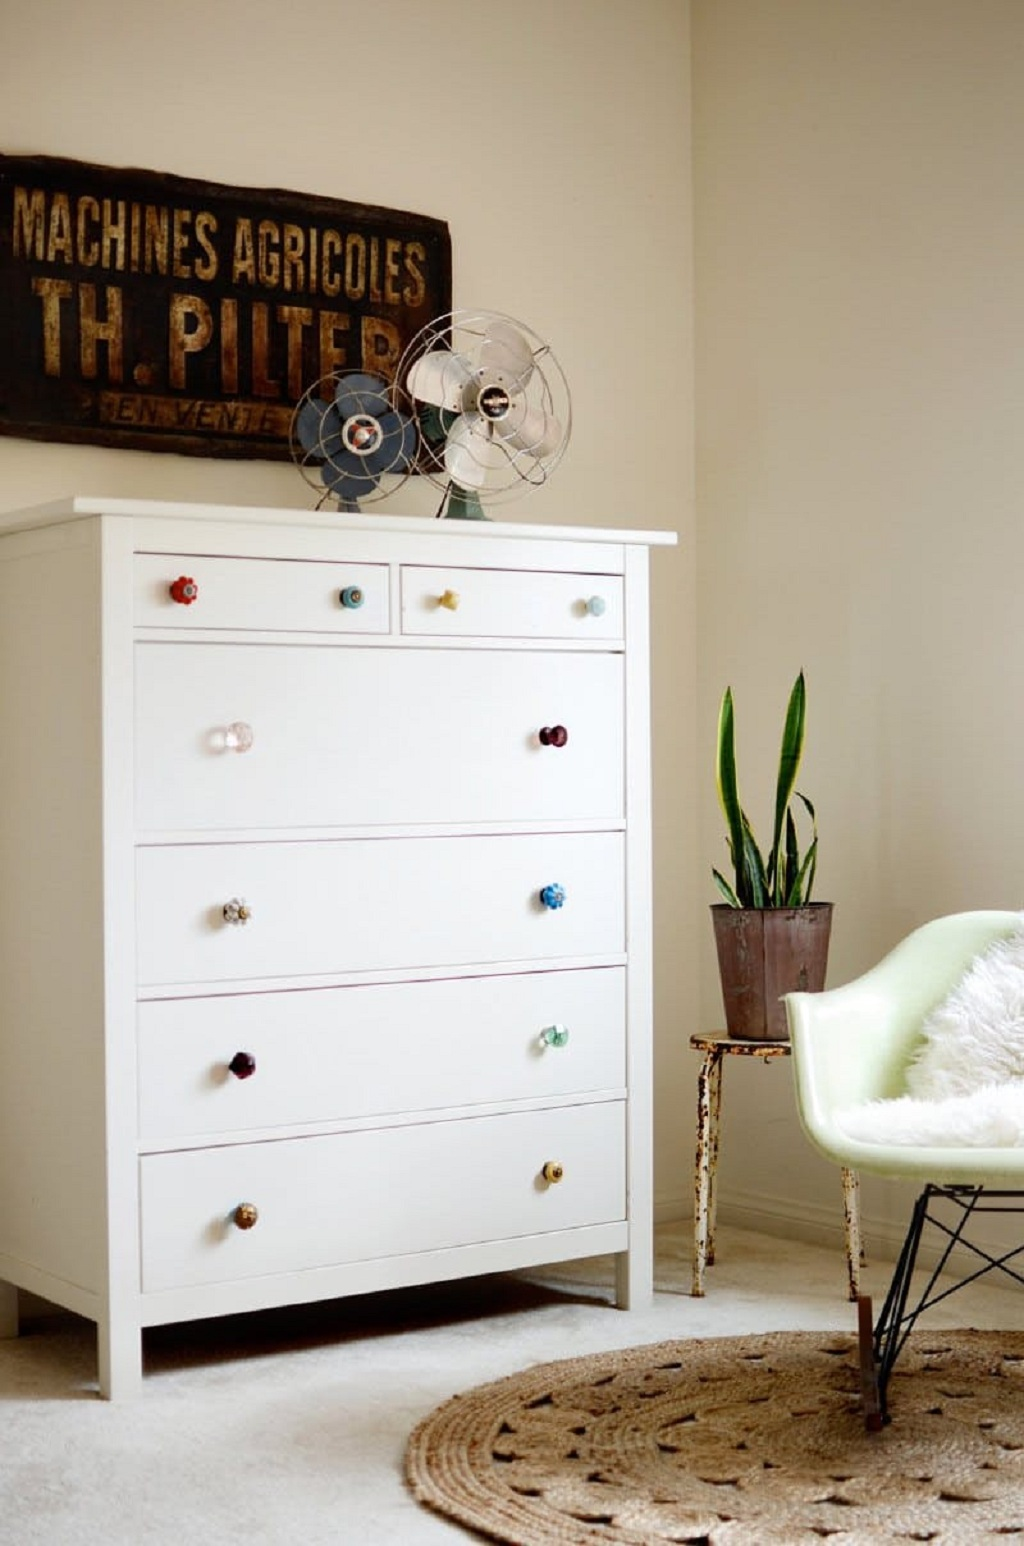 Ikea Decorative Cabinet Knobs And Pulls